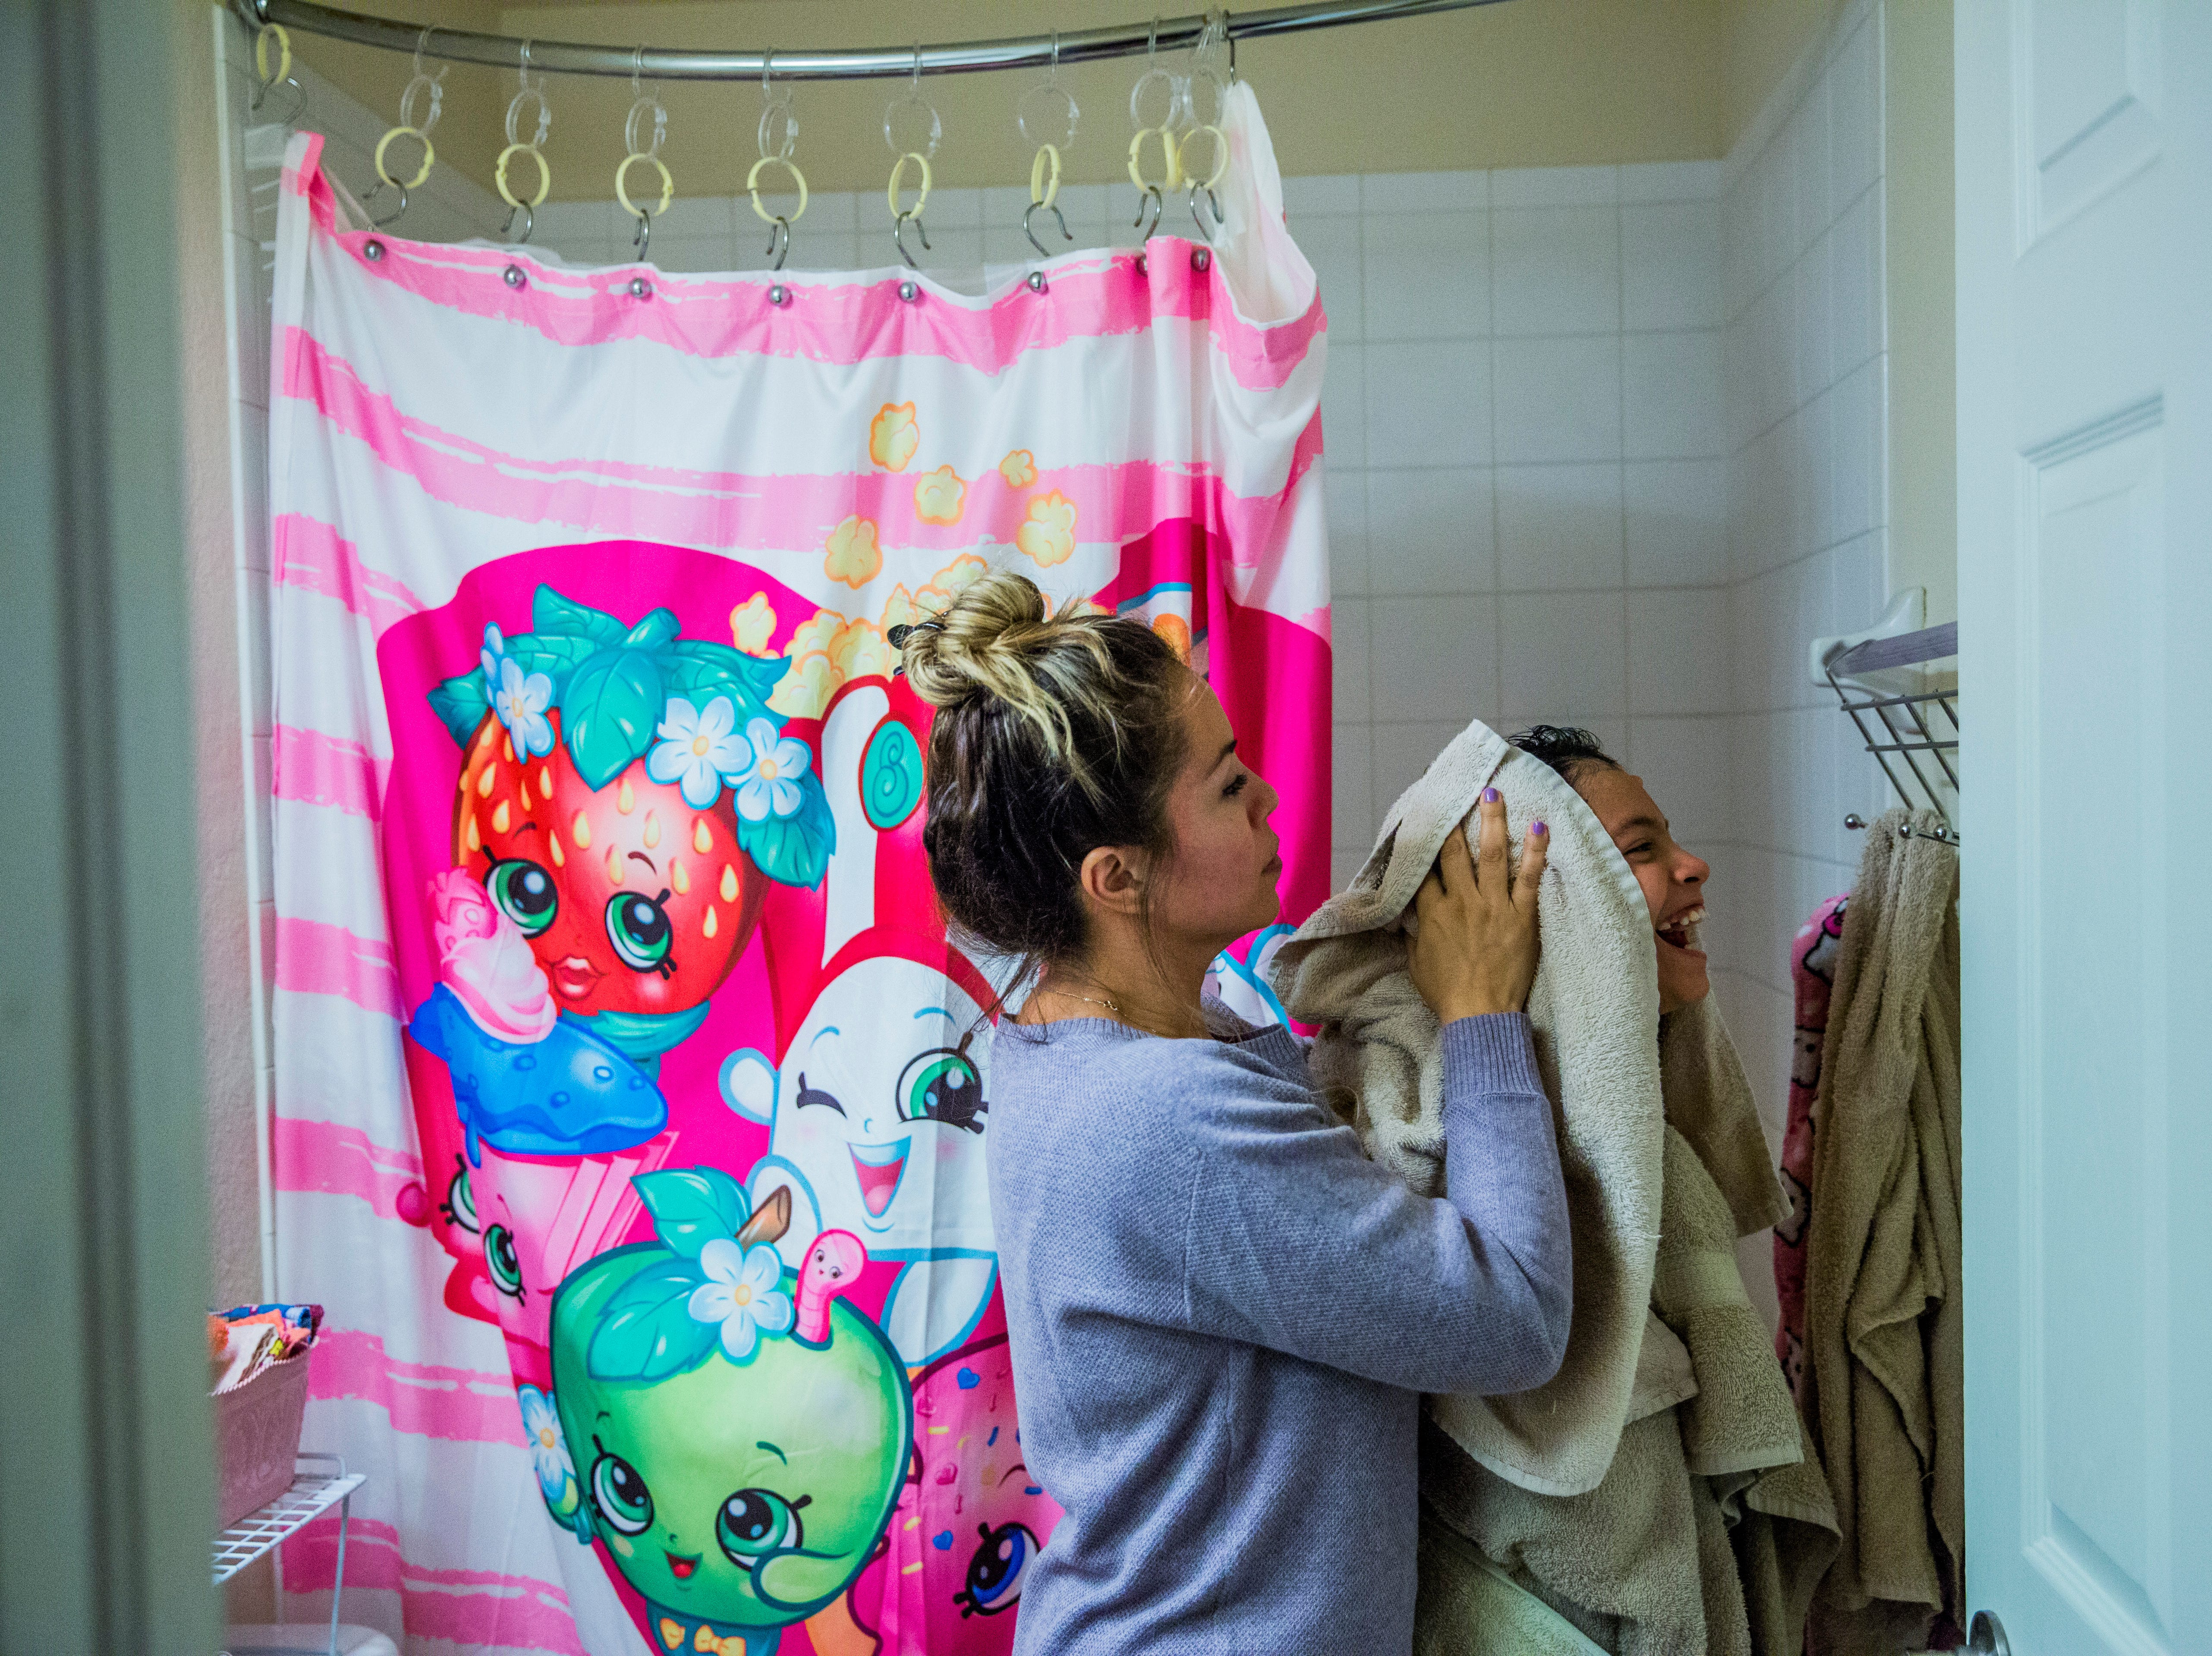 Marcela Guimoye helps dry off her daughter Camila Chang, 11, after a shower during their nighty routine in their North Naples home on Tuesday, Aug. 14, 2018.